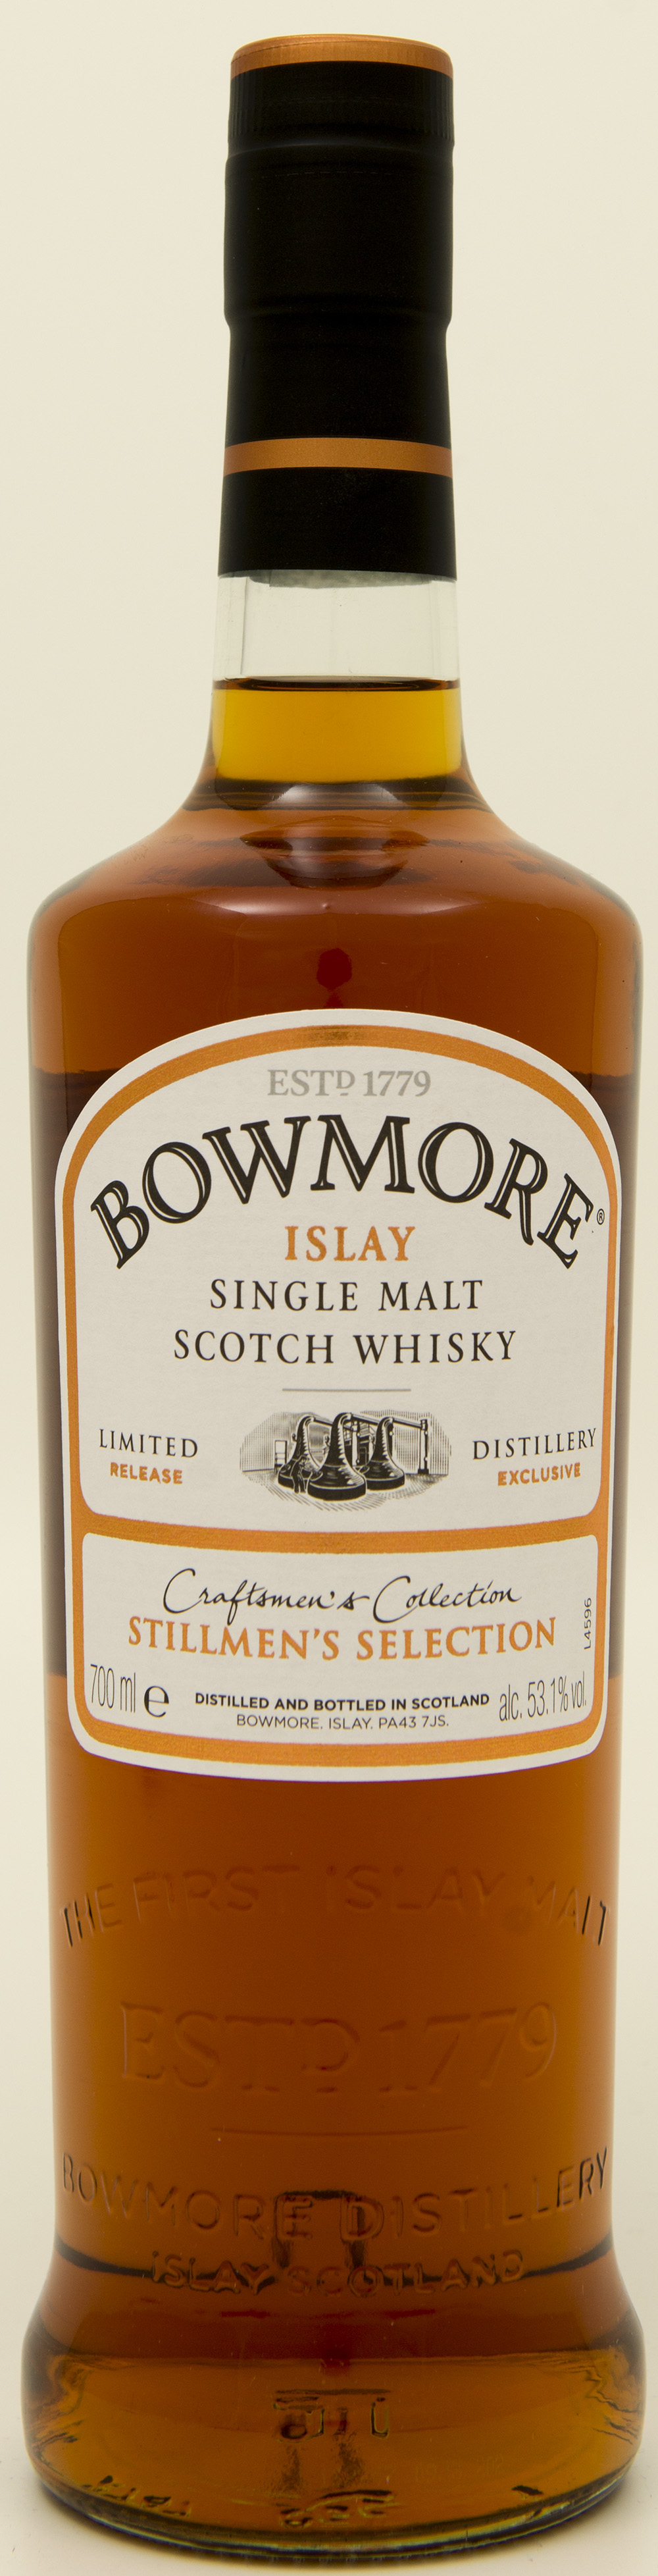 Billede: DSC_3223 - Bowmore Stillmen's Selection - bottle front.jpg